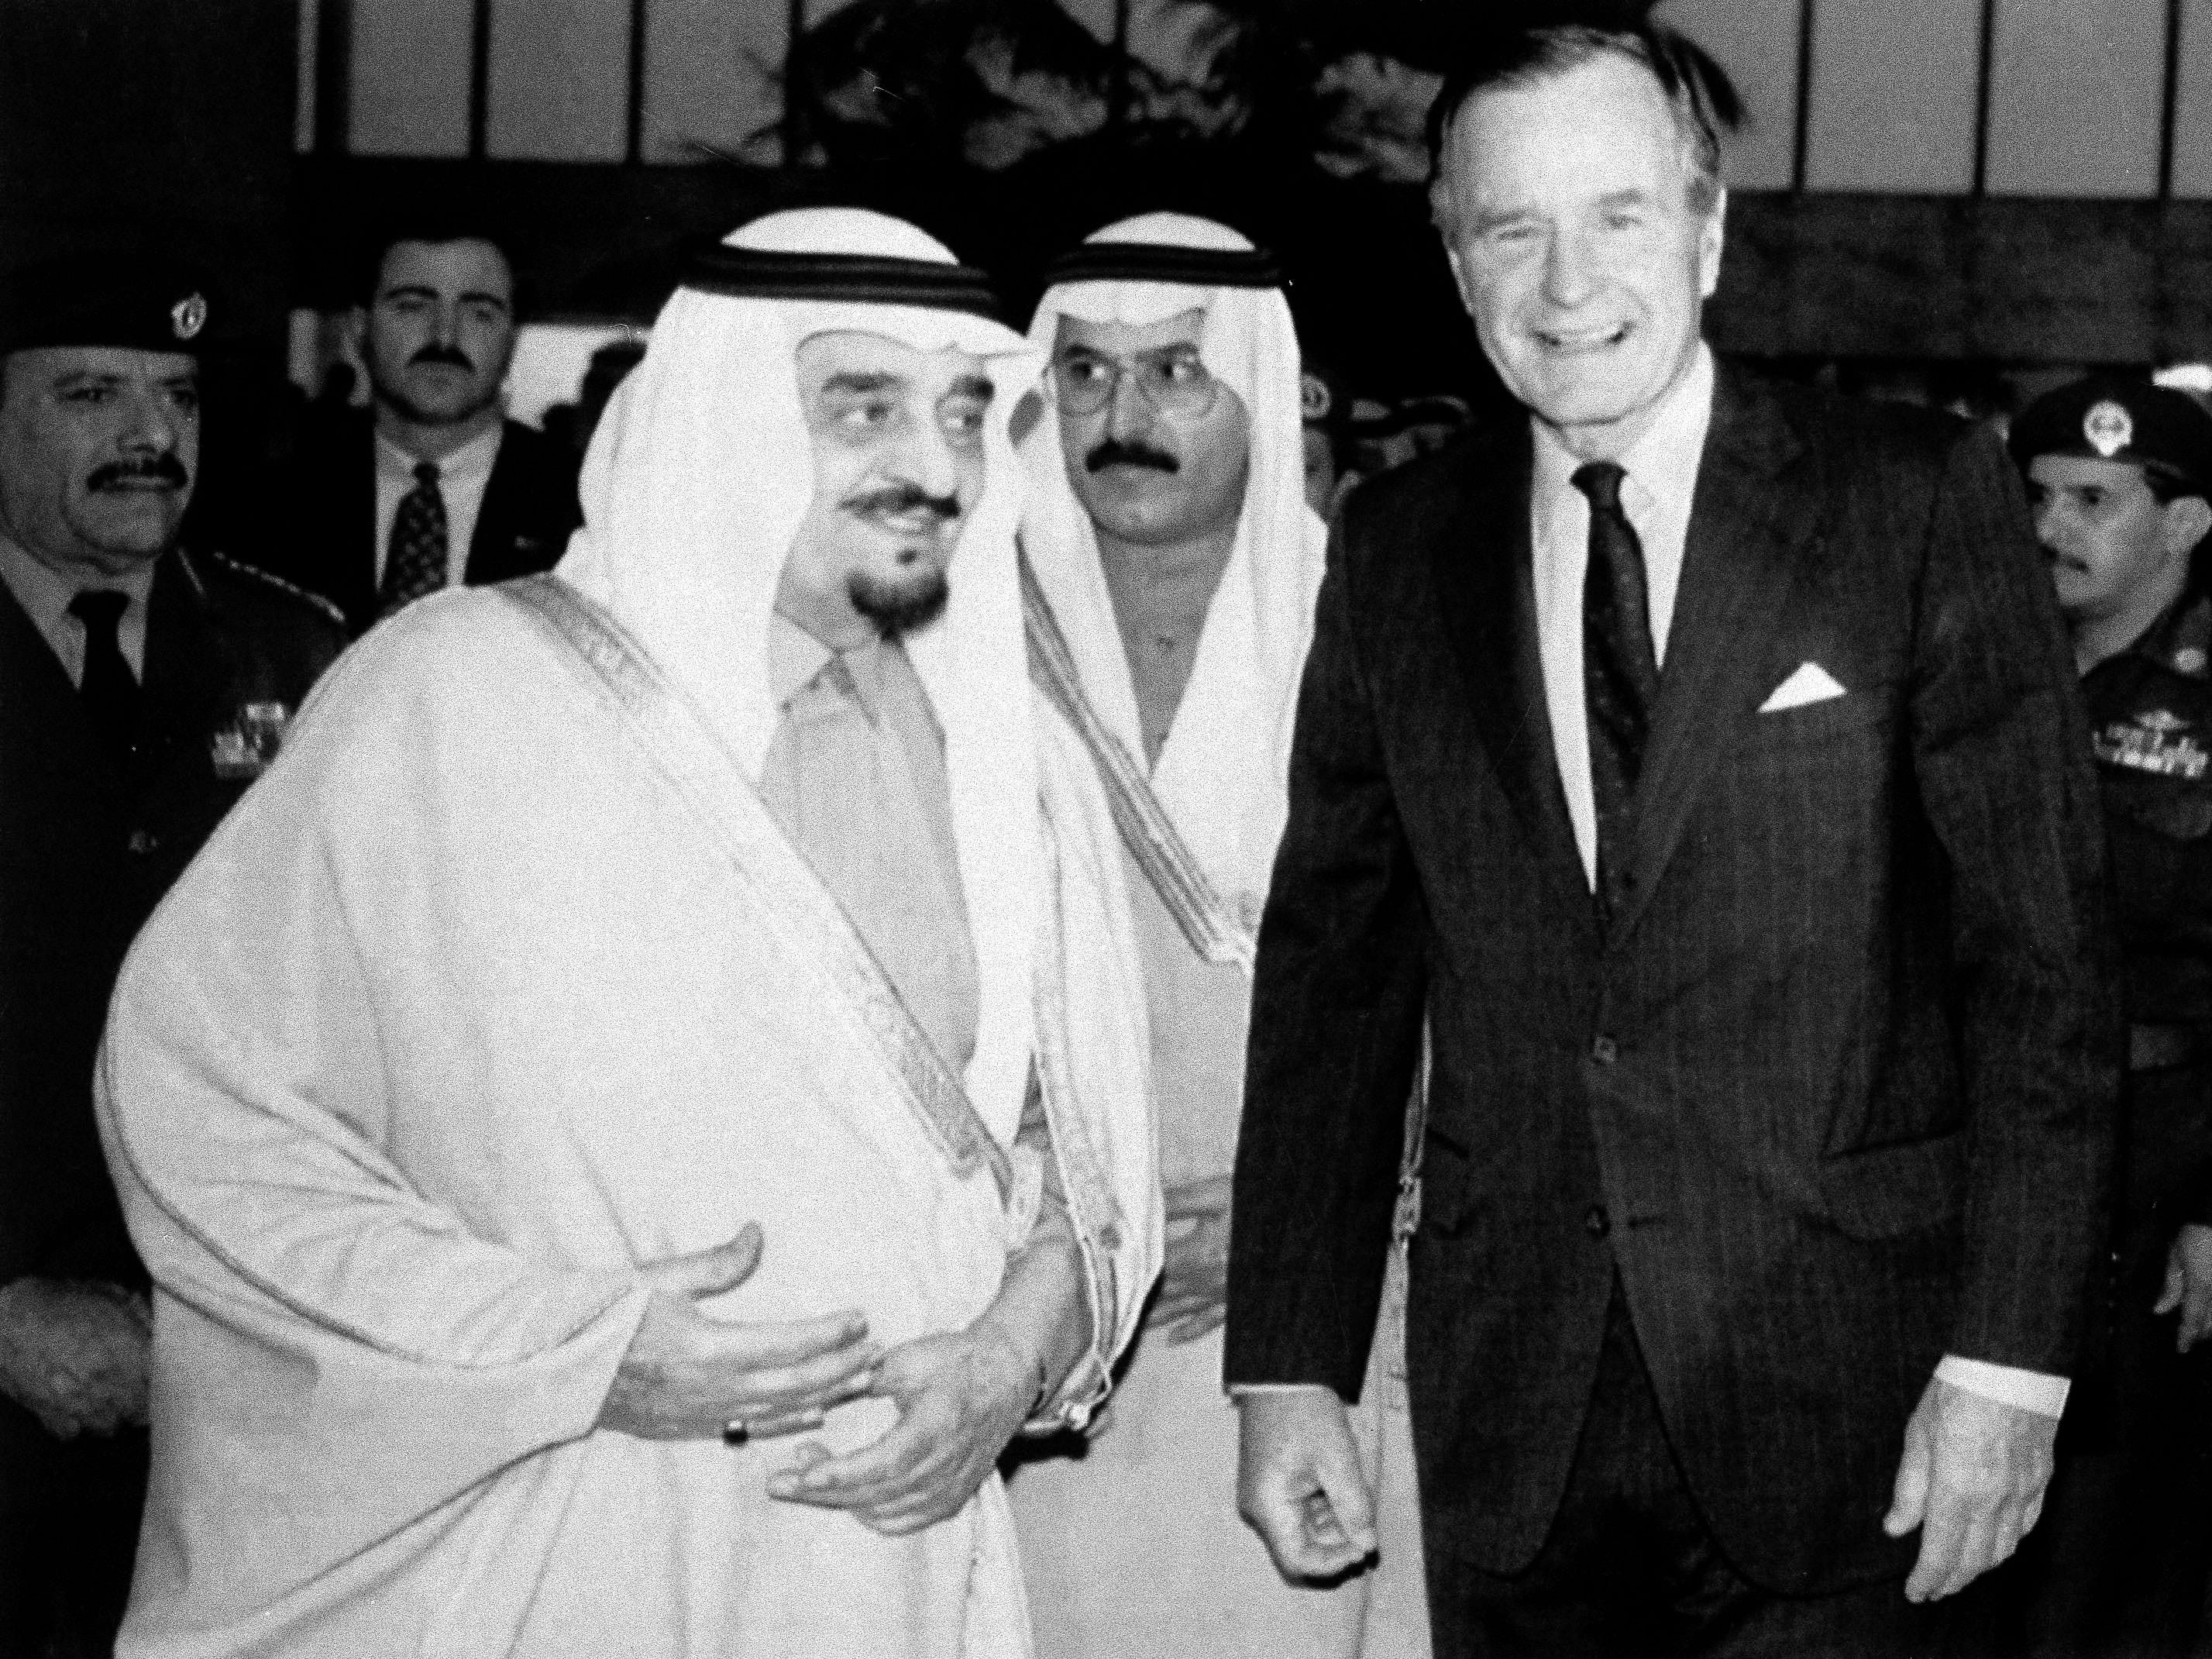 President George Bush, right, meets with King Fahd of Saudi Arabia,left, at the Royal Pavilion of Jeddah, Dec. 31, 1992. Bush was on a short visit to Saudi Arabia and later flew on to Somalia. Man at center is unidentified. (AP Photo/Doug Mills)